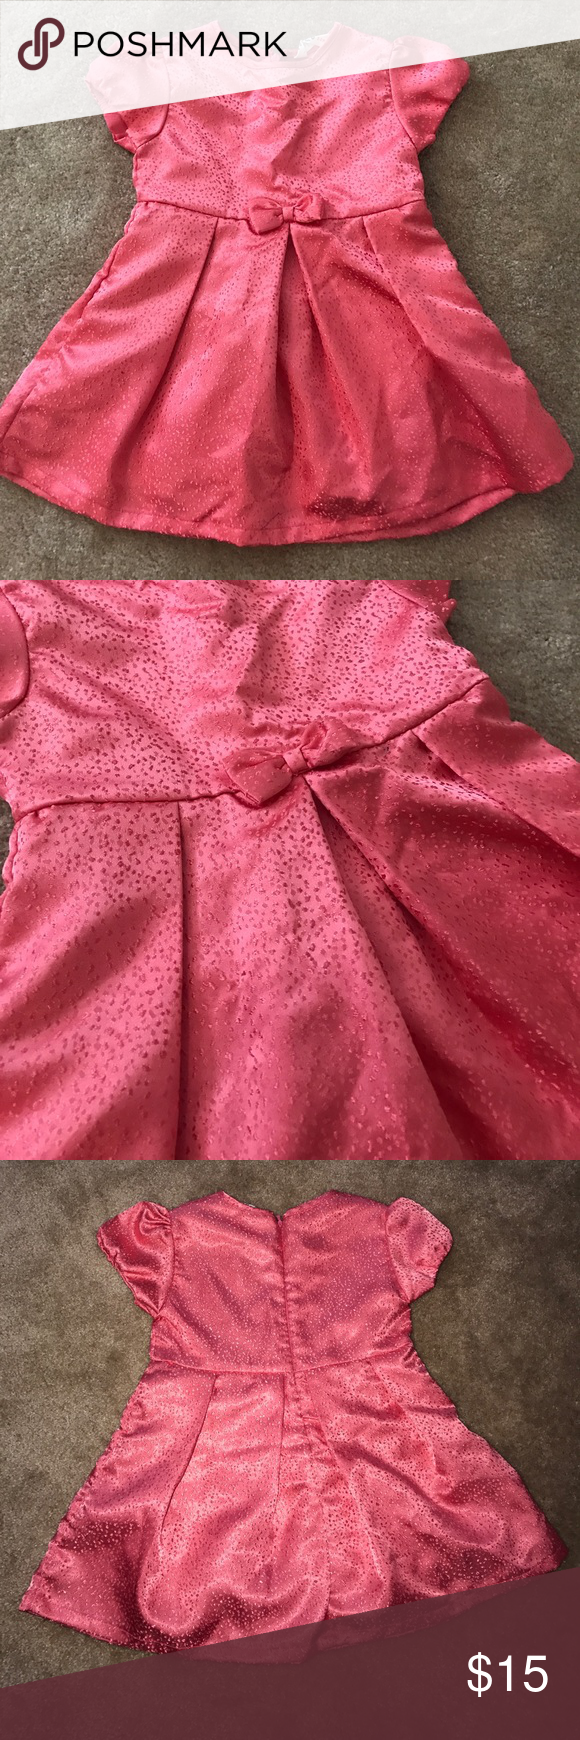 Coral 2T dress Worn 1 for a bridal shower in pristine condition. Dresses Formal